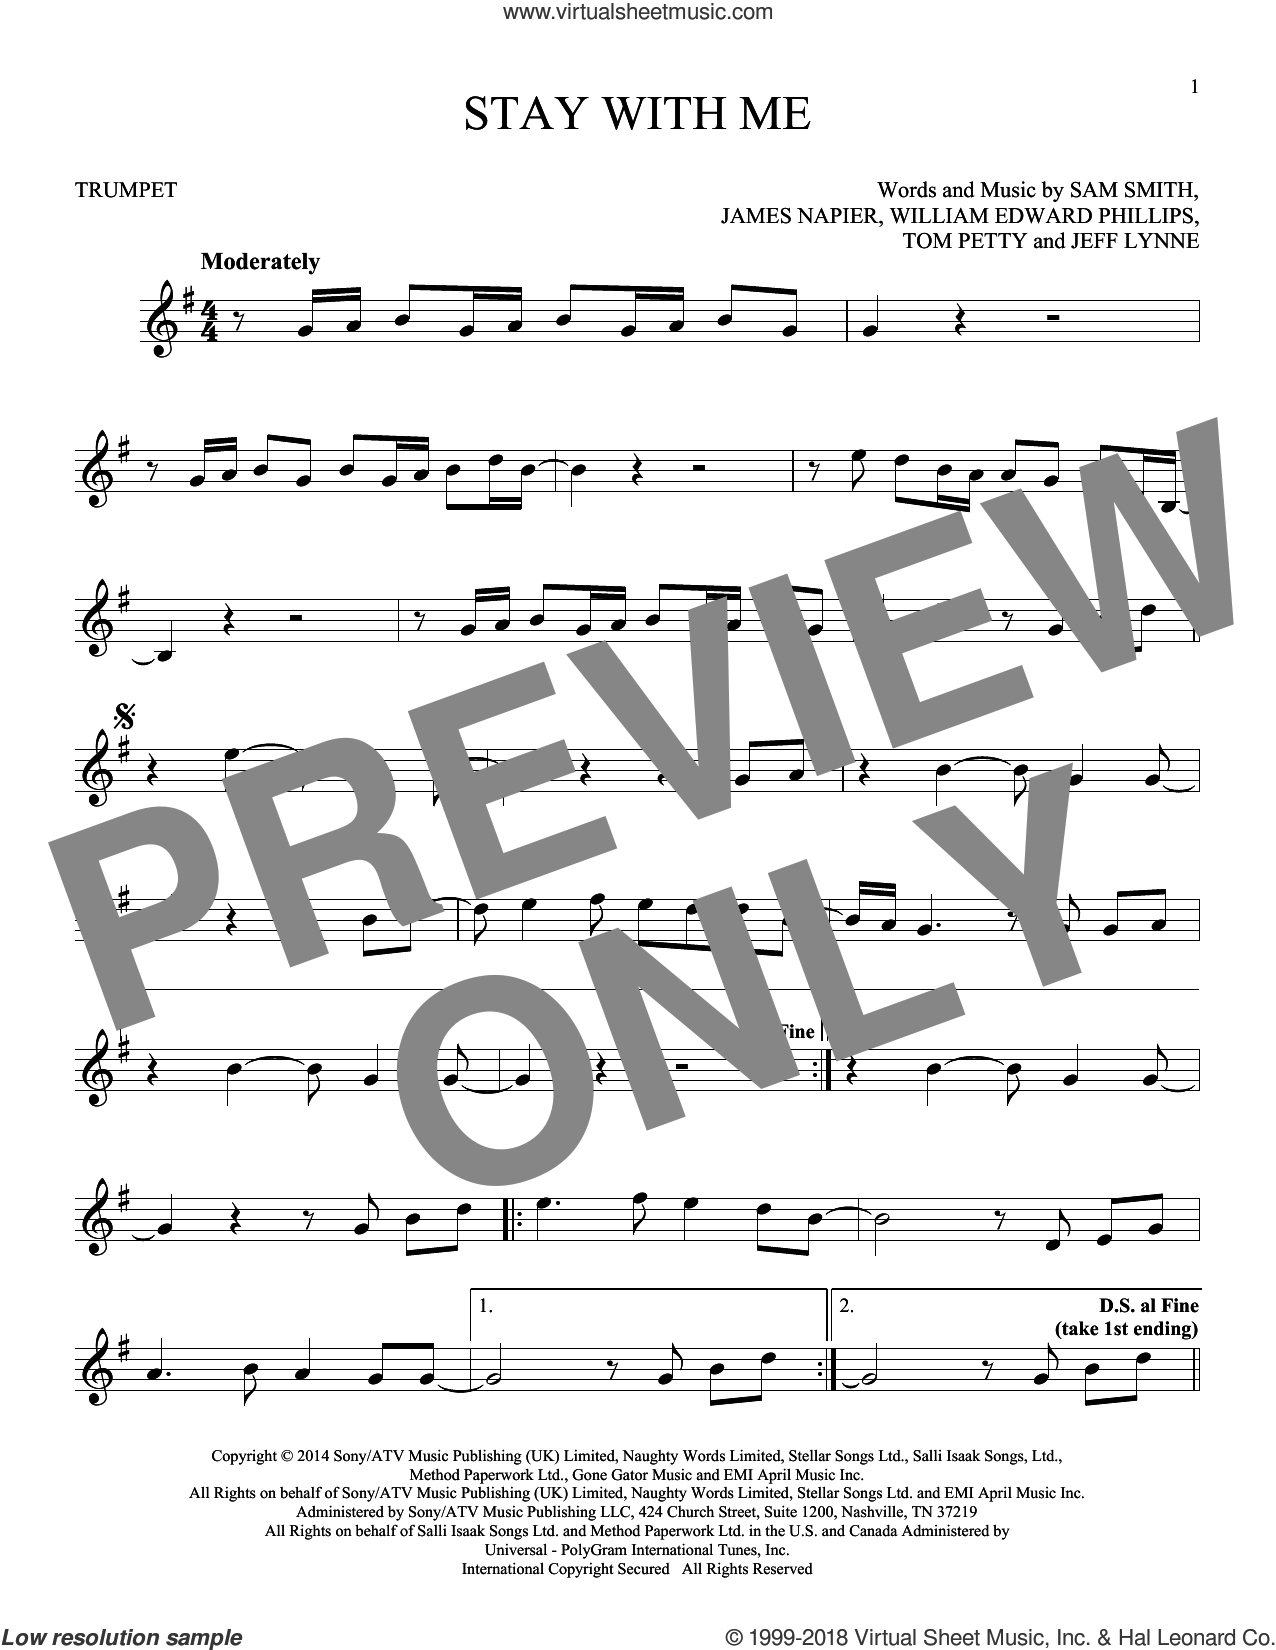 Stay With Me sheet music for trumpet solo by William Edward Phillips, James Napier, Jeff Lynne, Sam Smith and Tom Petty. Score Image Preview.